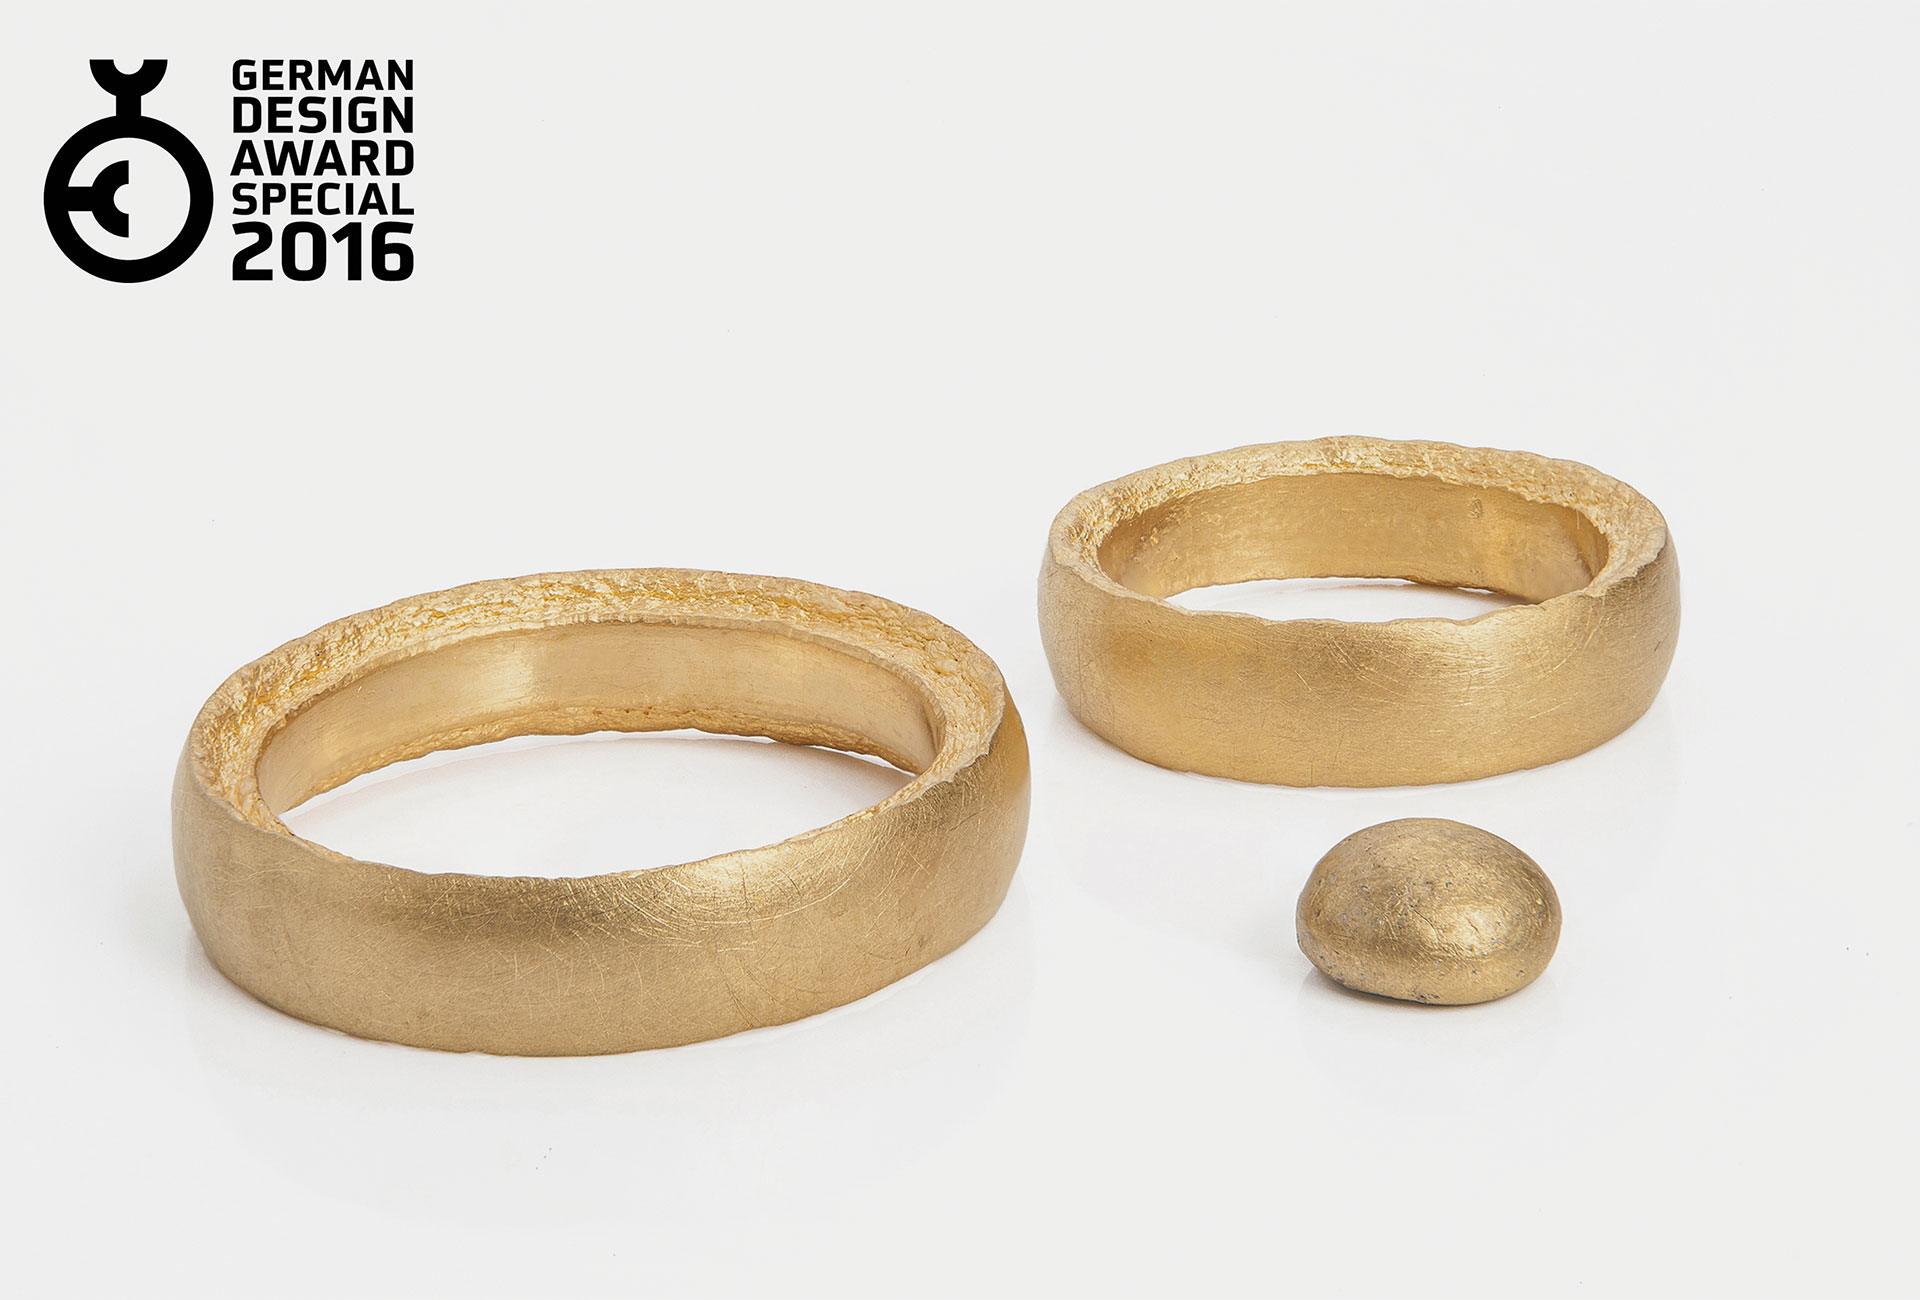 Designers – Contemporary Jewelry and Objects